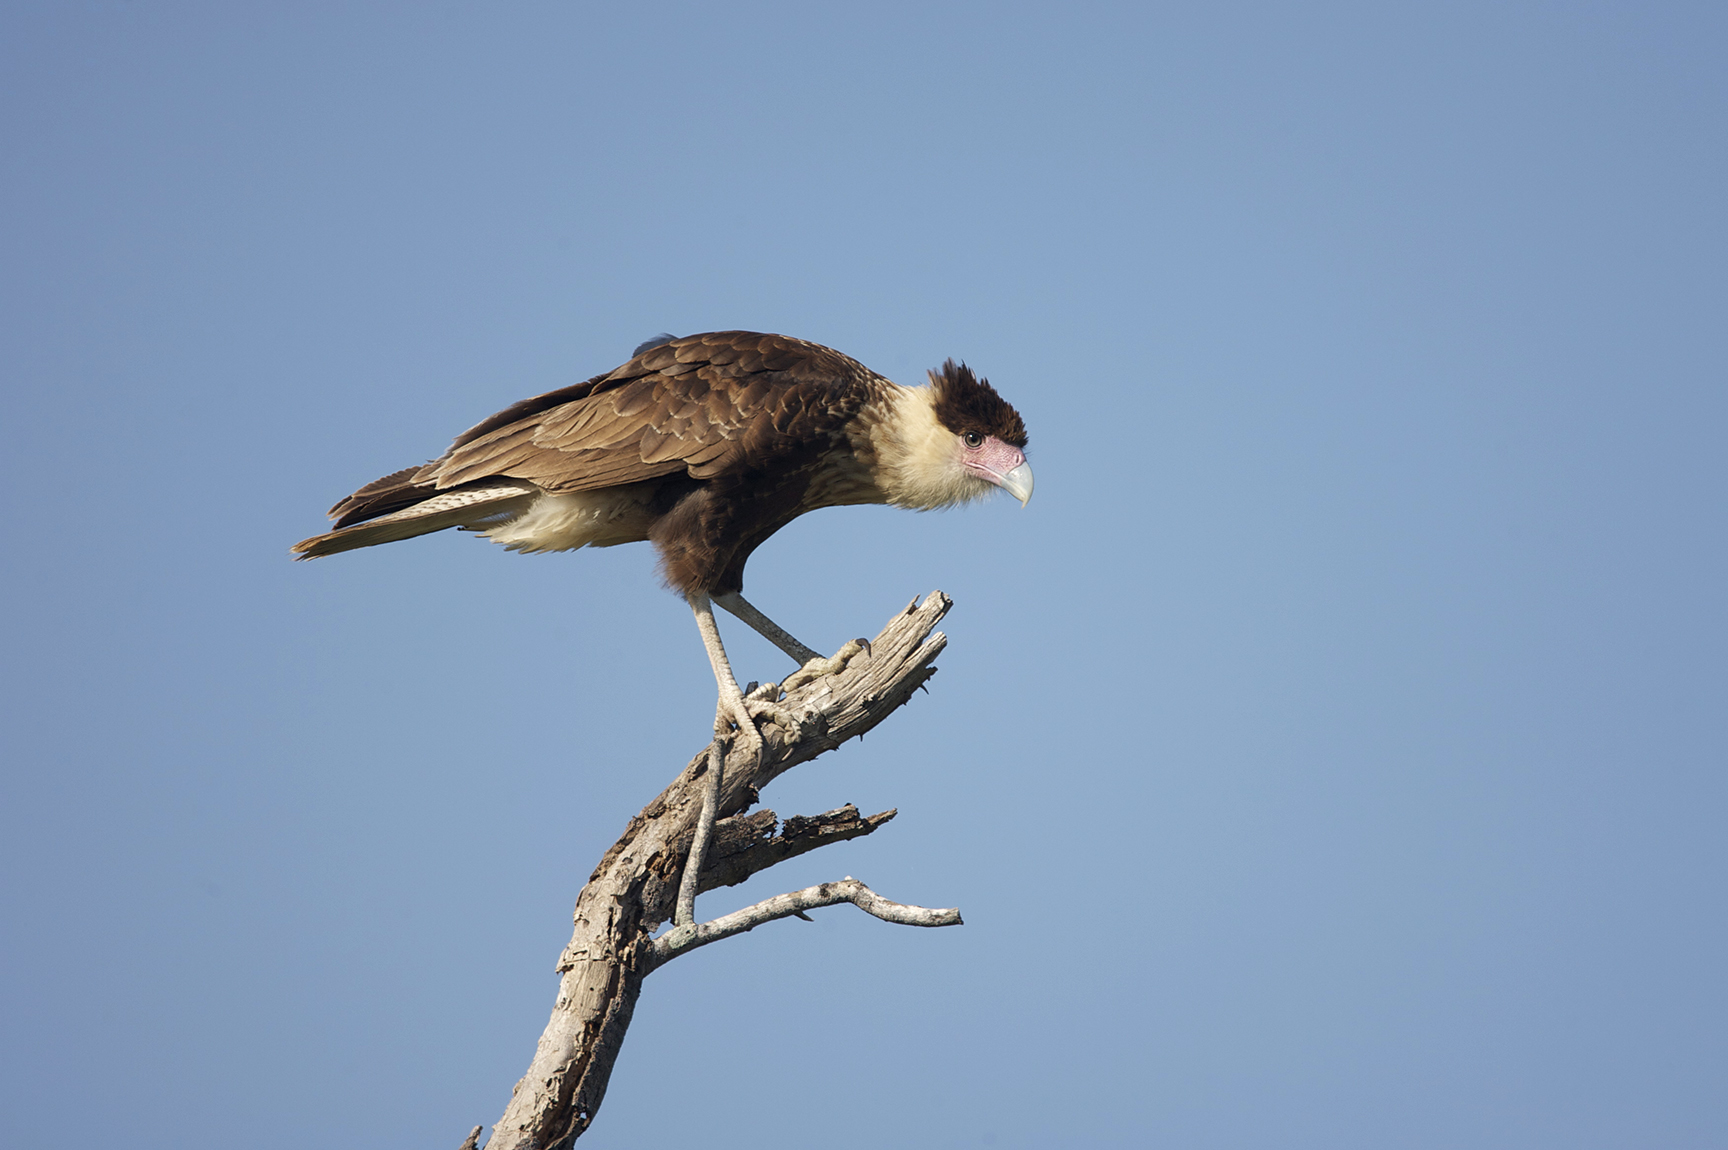 CRESTED CARACARA - MCMULLEN COUNTY TX